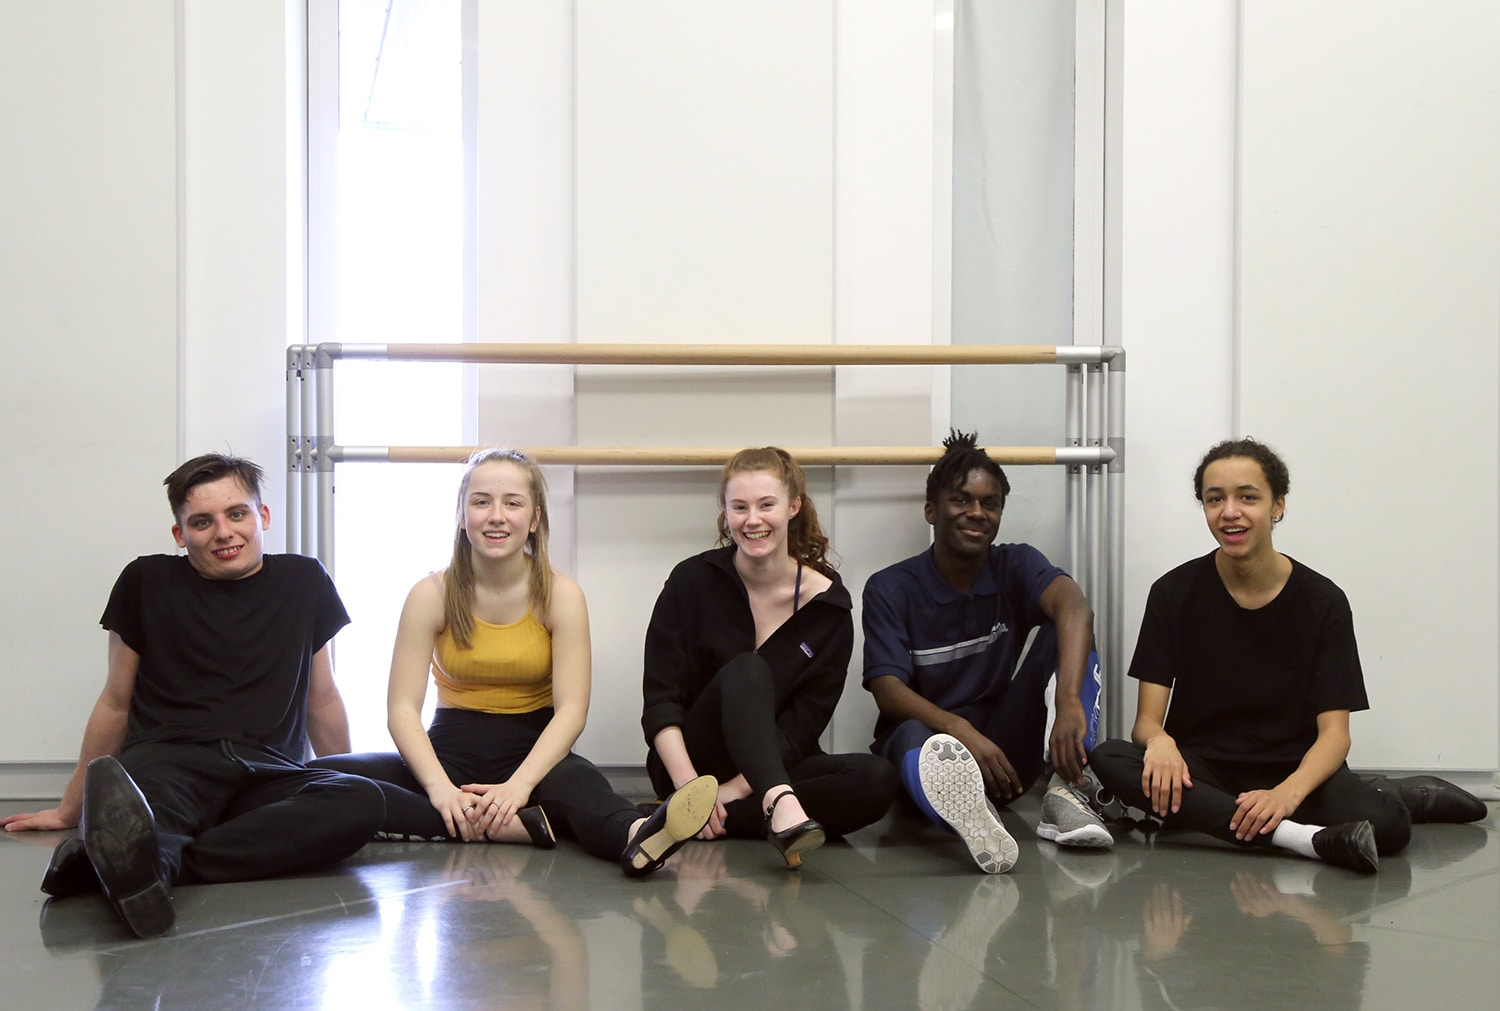 Students sat in dance studio